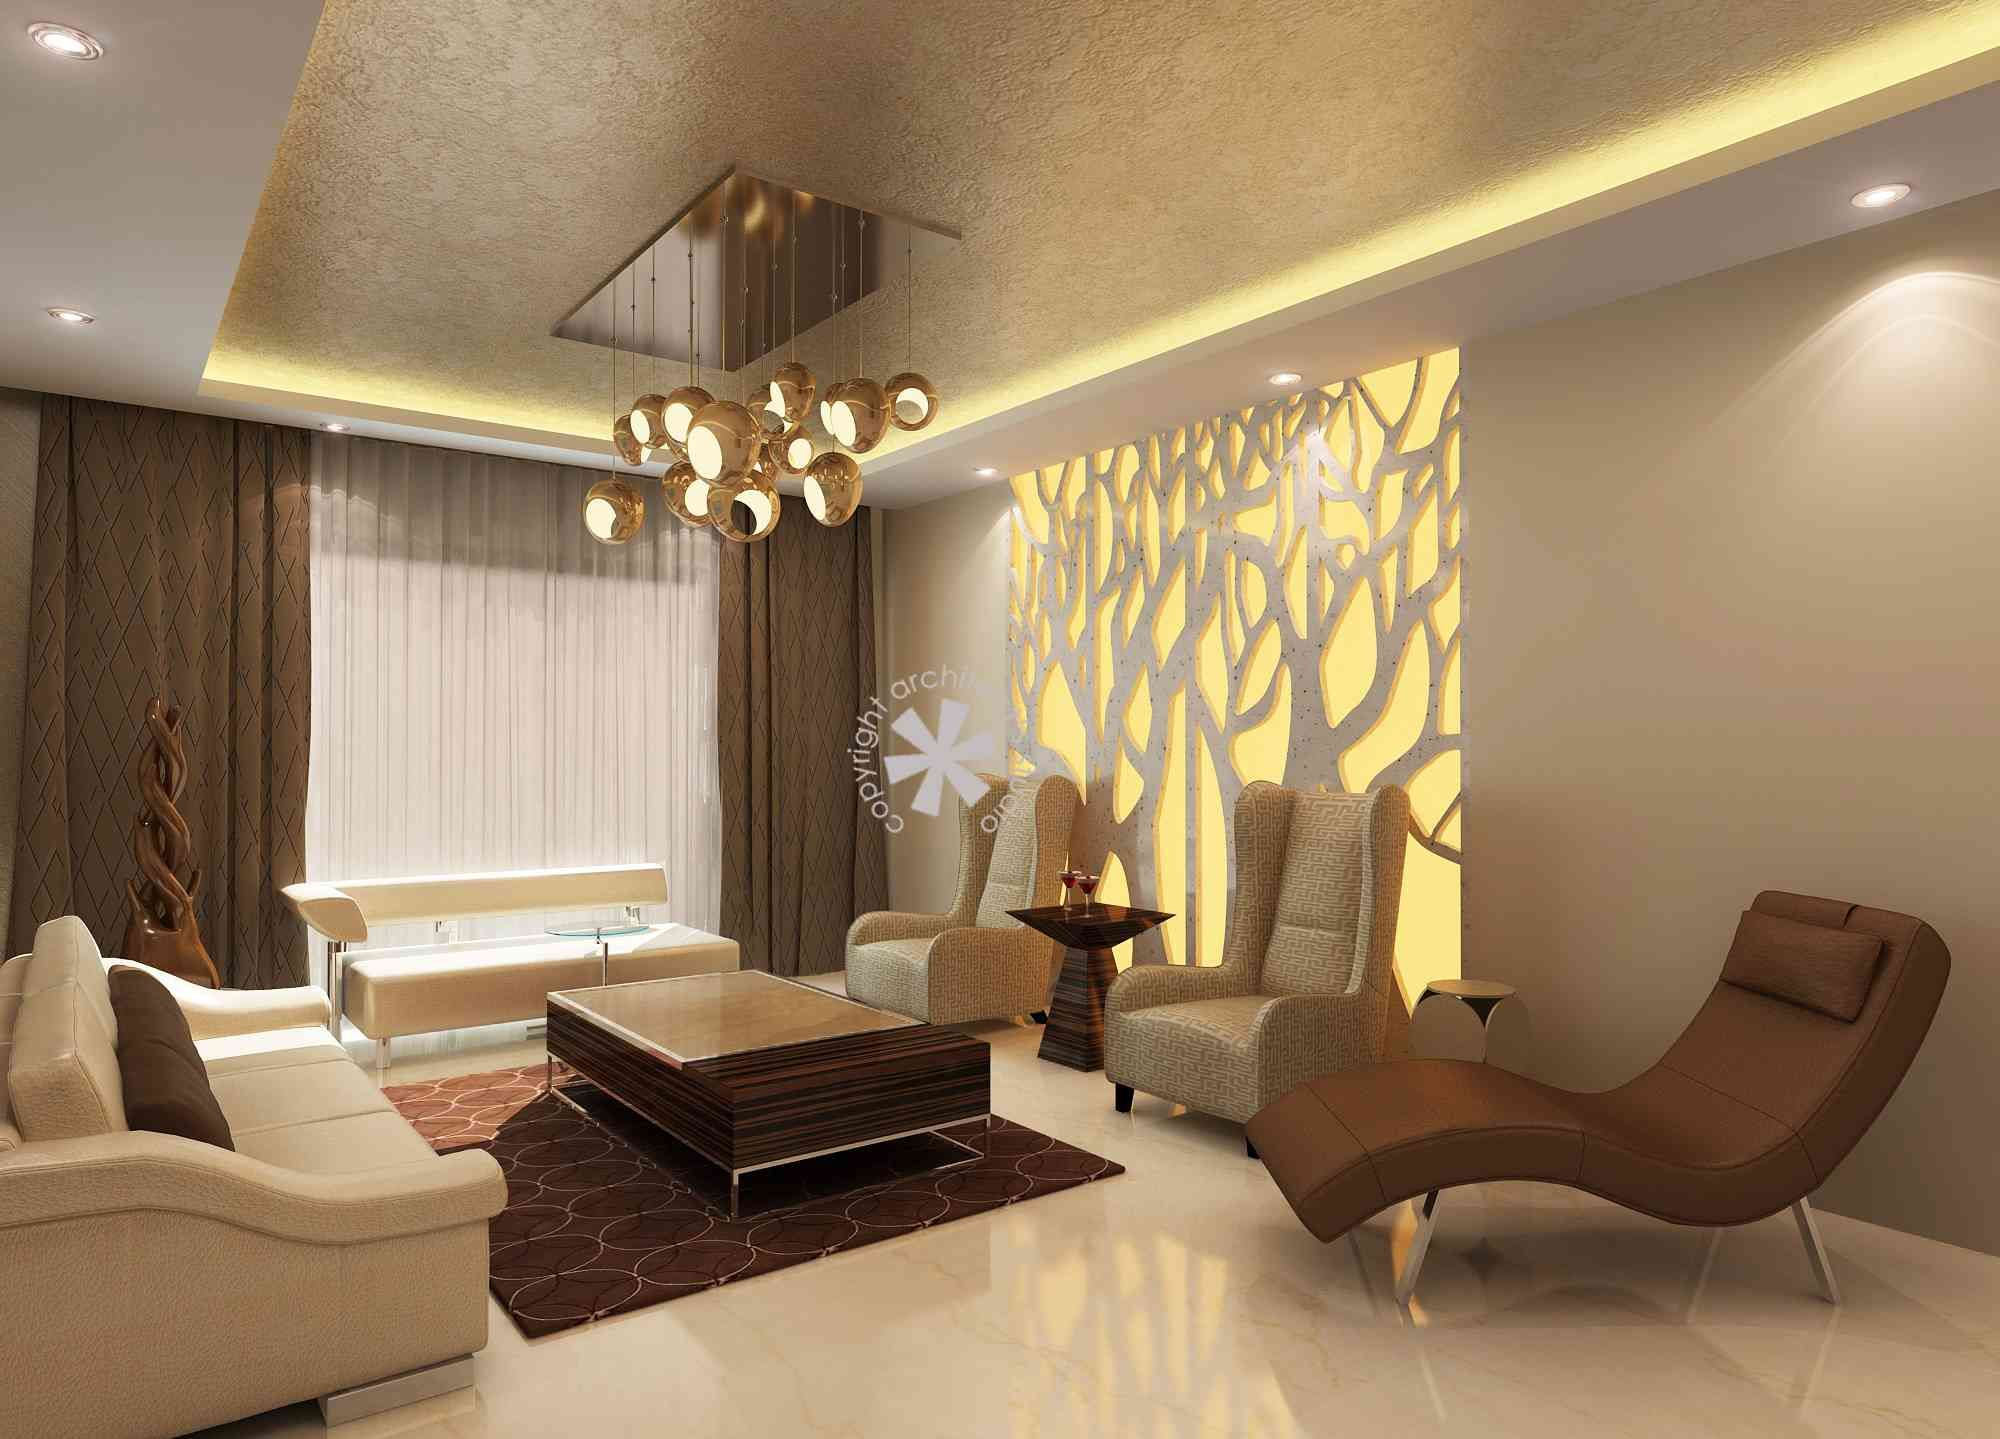 Living Room with Chandelier design by Architects' Studio ...